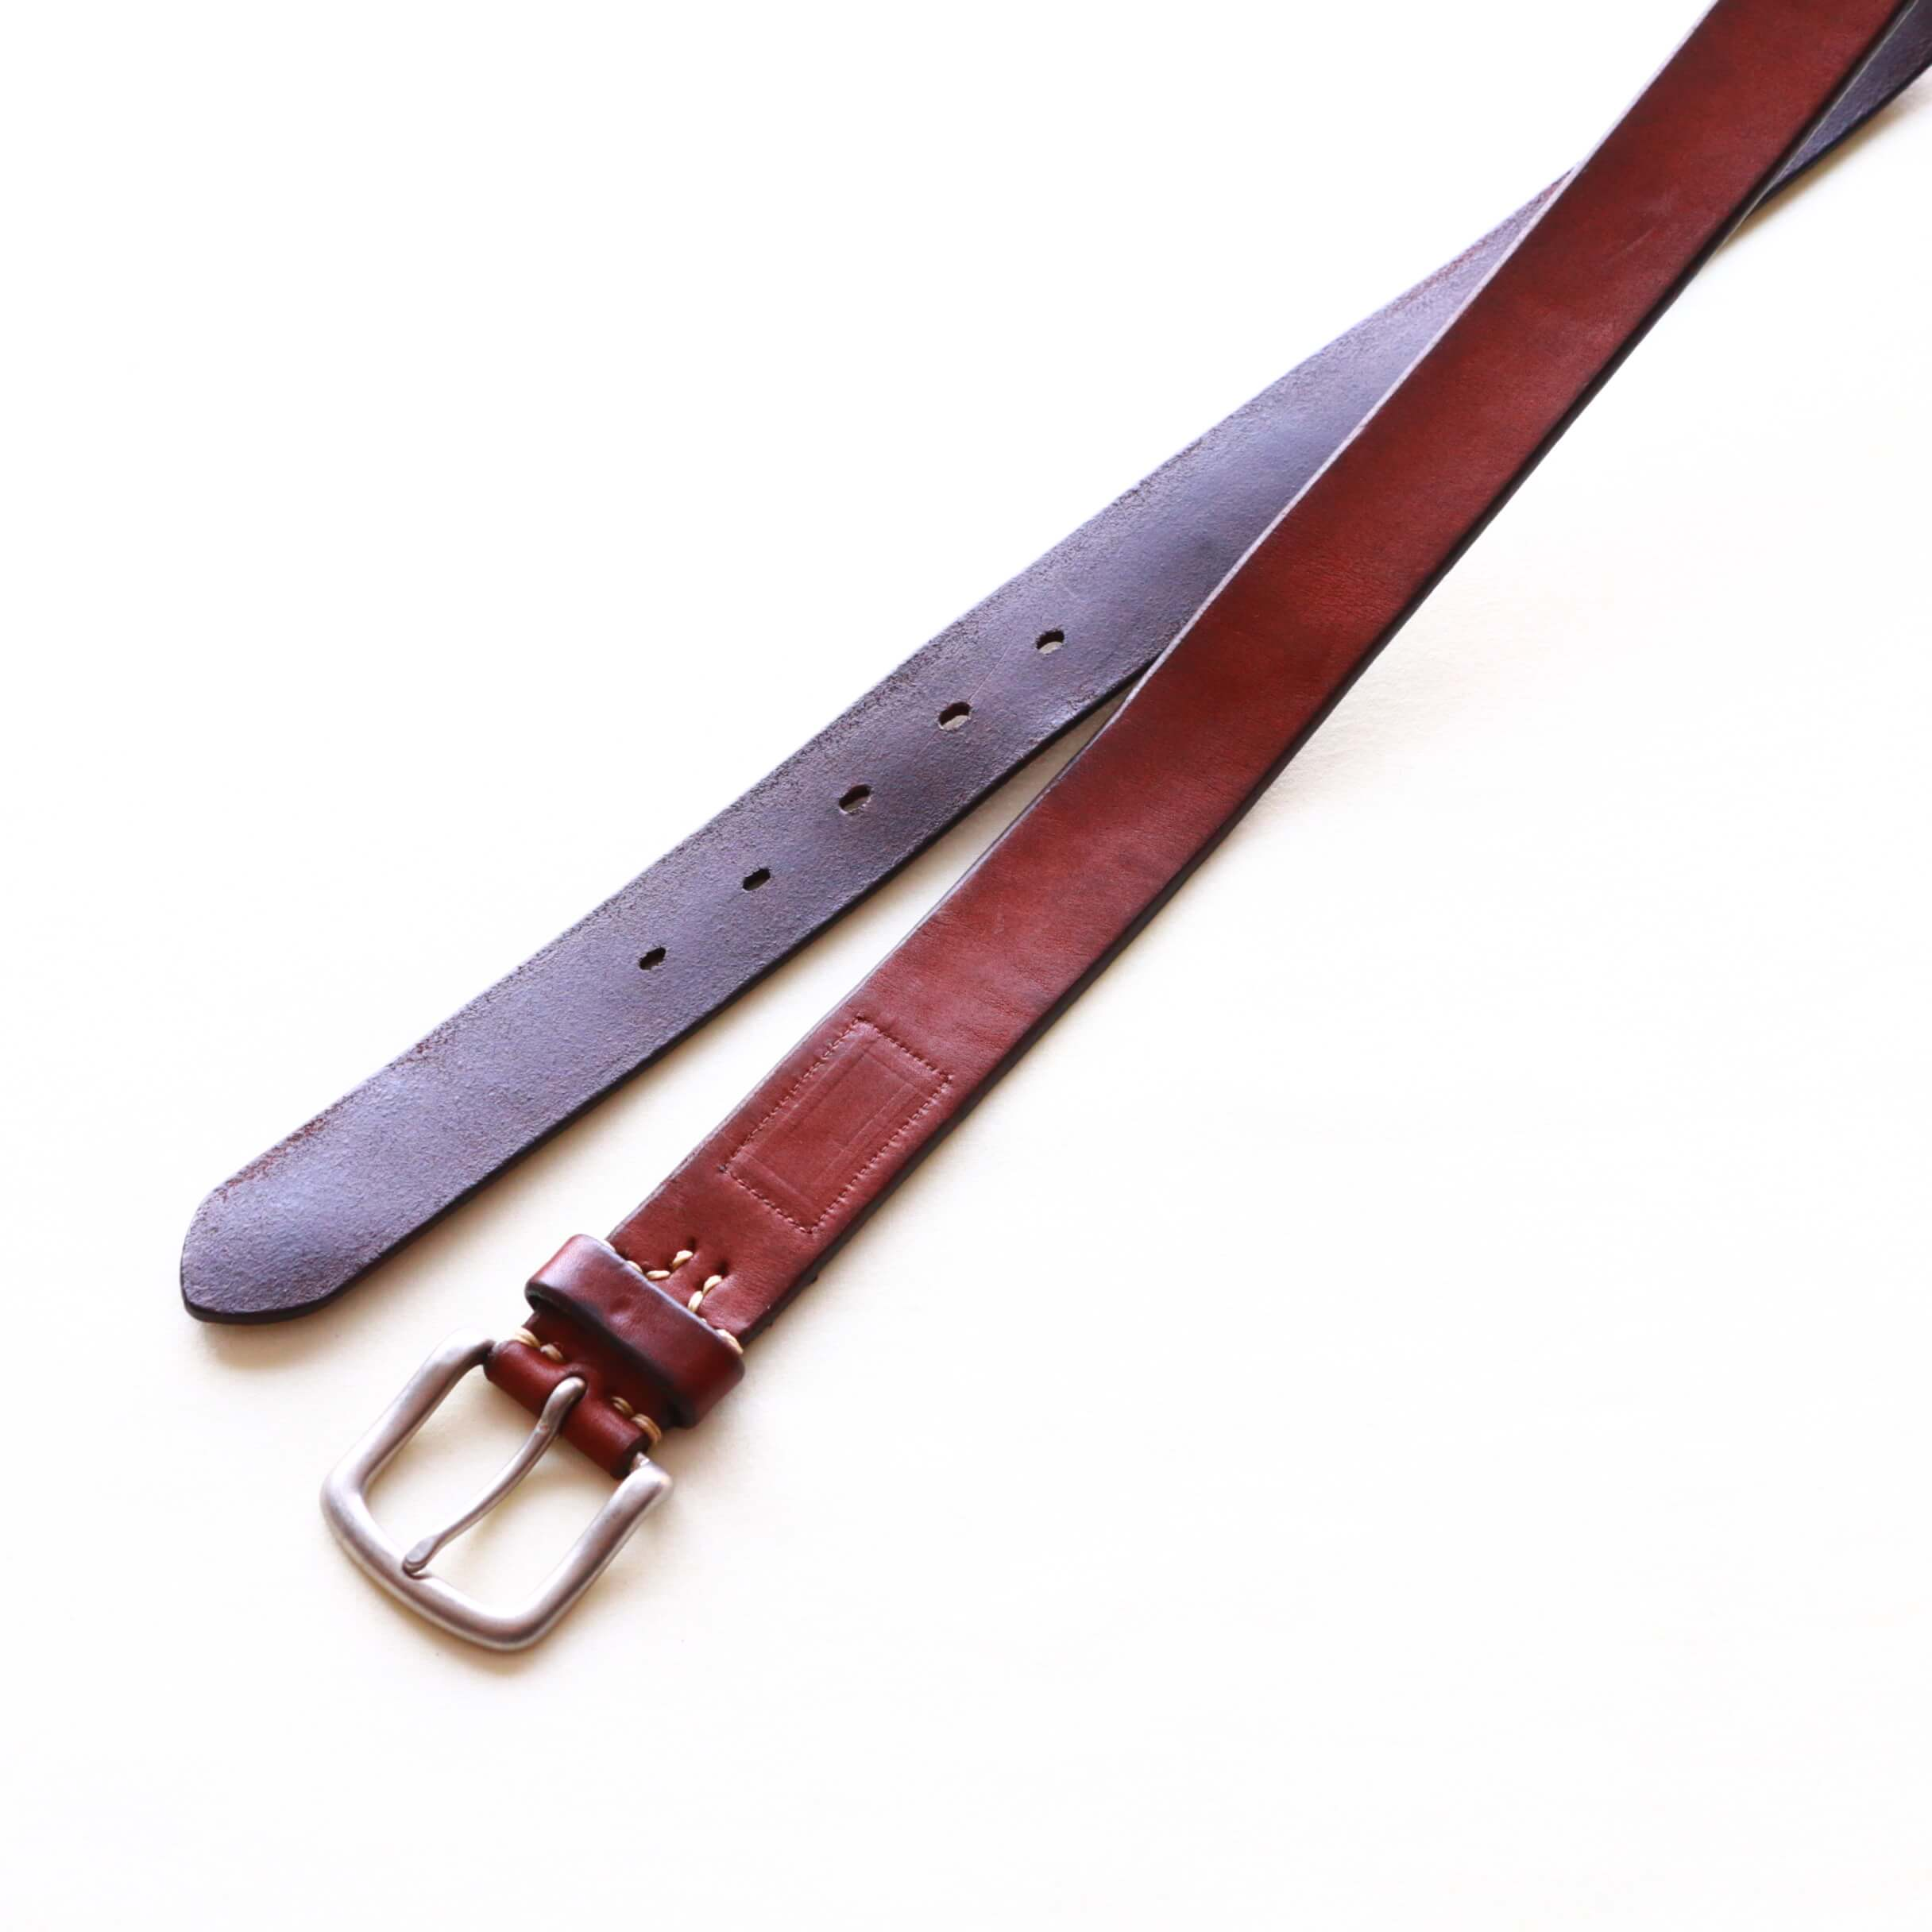 Vintage Works ヴィンテージワークス Leather belt レザーベルト DH5702